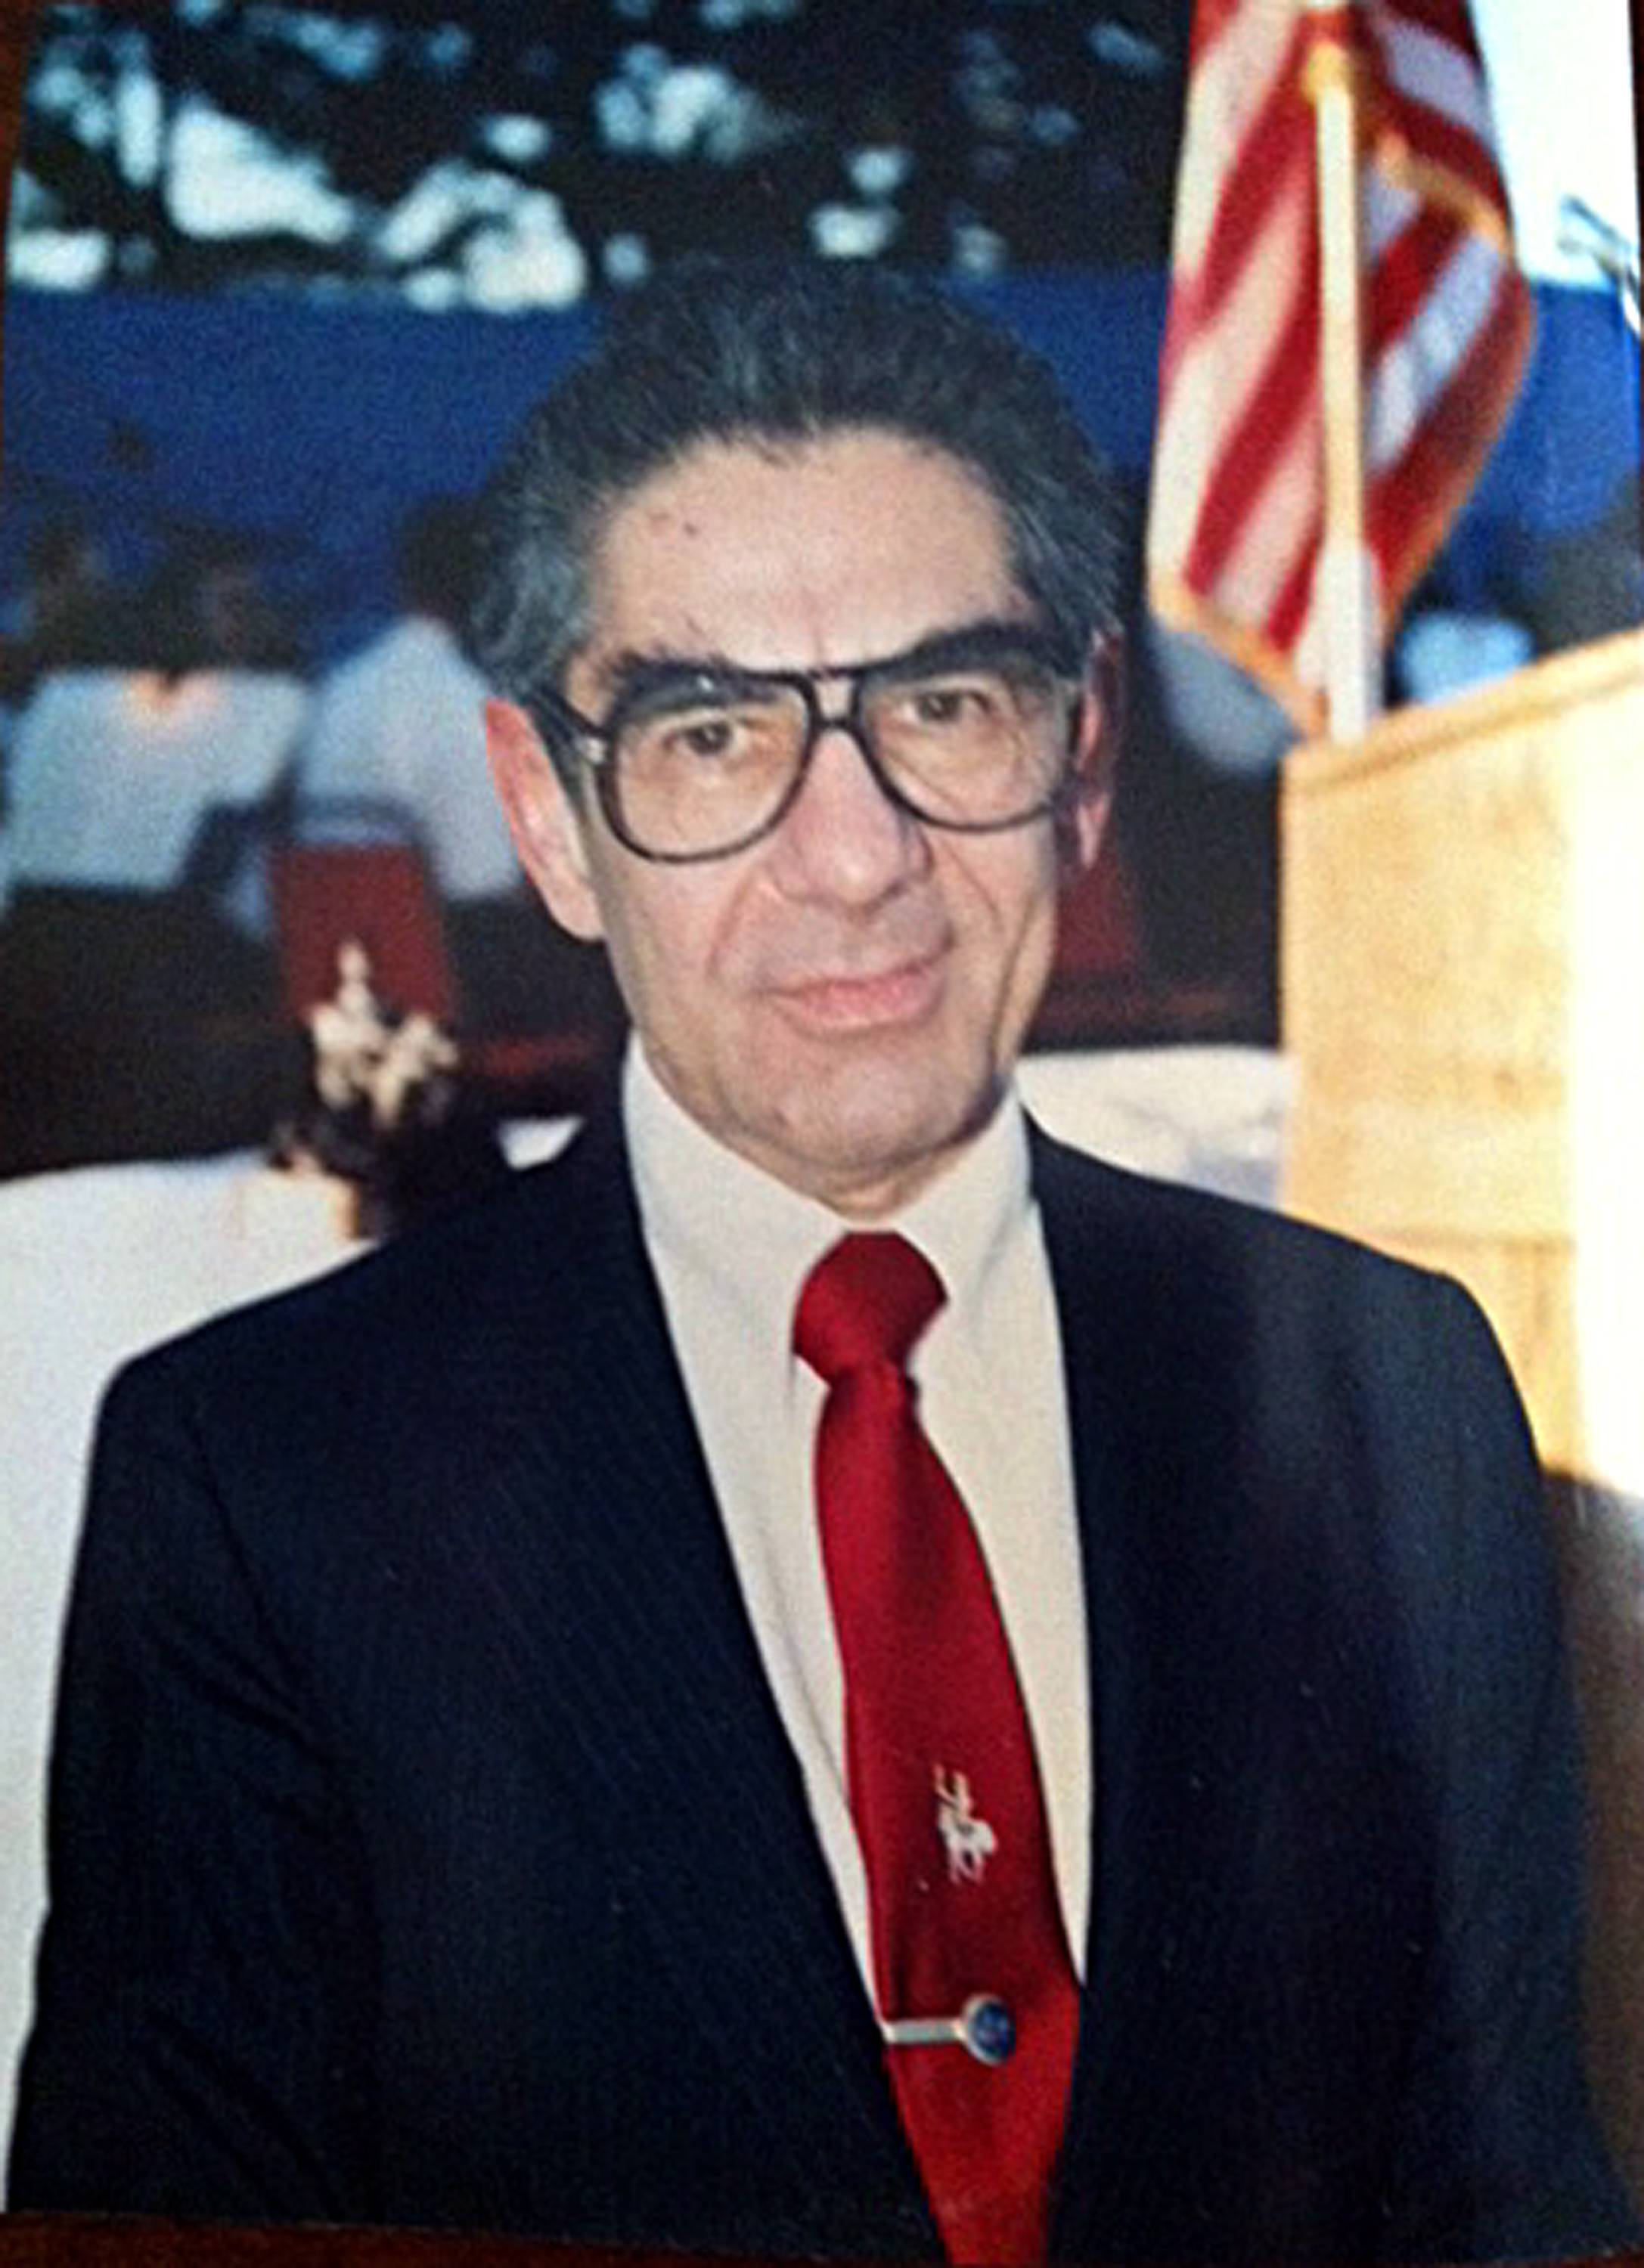 Associated Press/Courtesy Steinfeld family Former U.S. Surgeon General Jesse Steinfeld, who became the first surgeon general ever forced out of office by the president after campaigning against the dangers of smoking during the Richard Nixon era, has died in Southern California. He was 87.